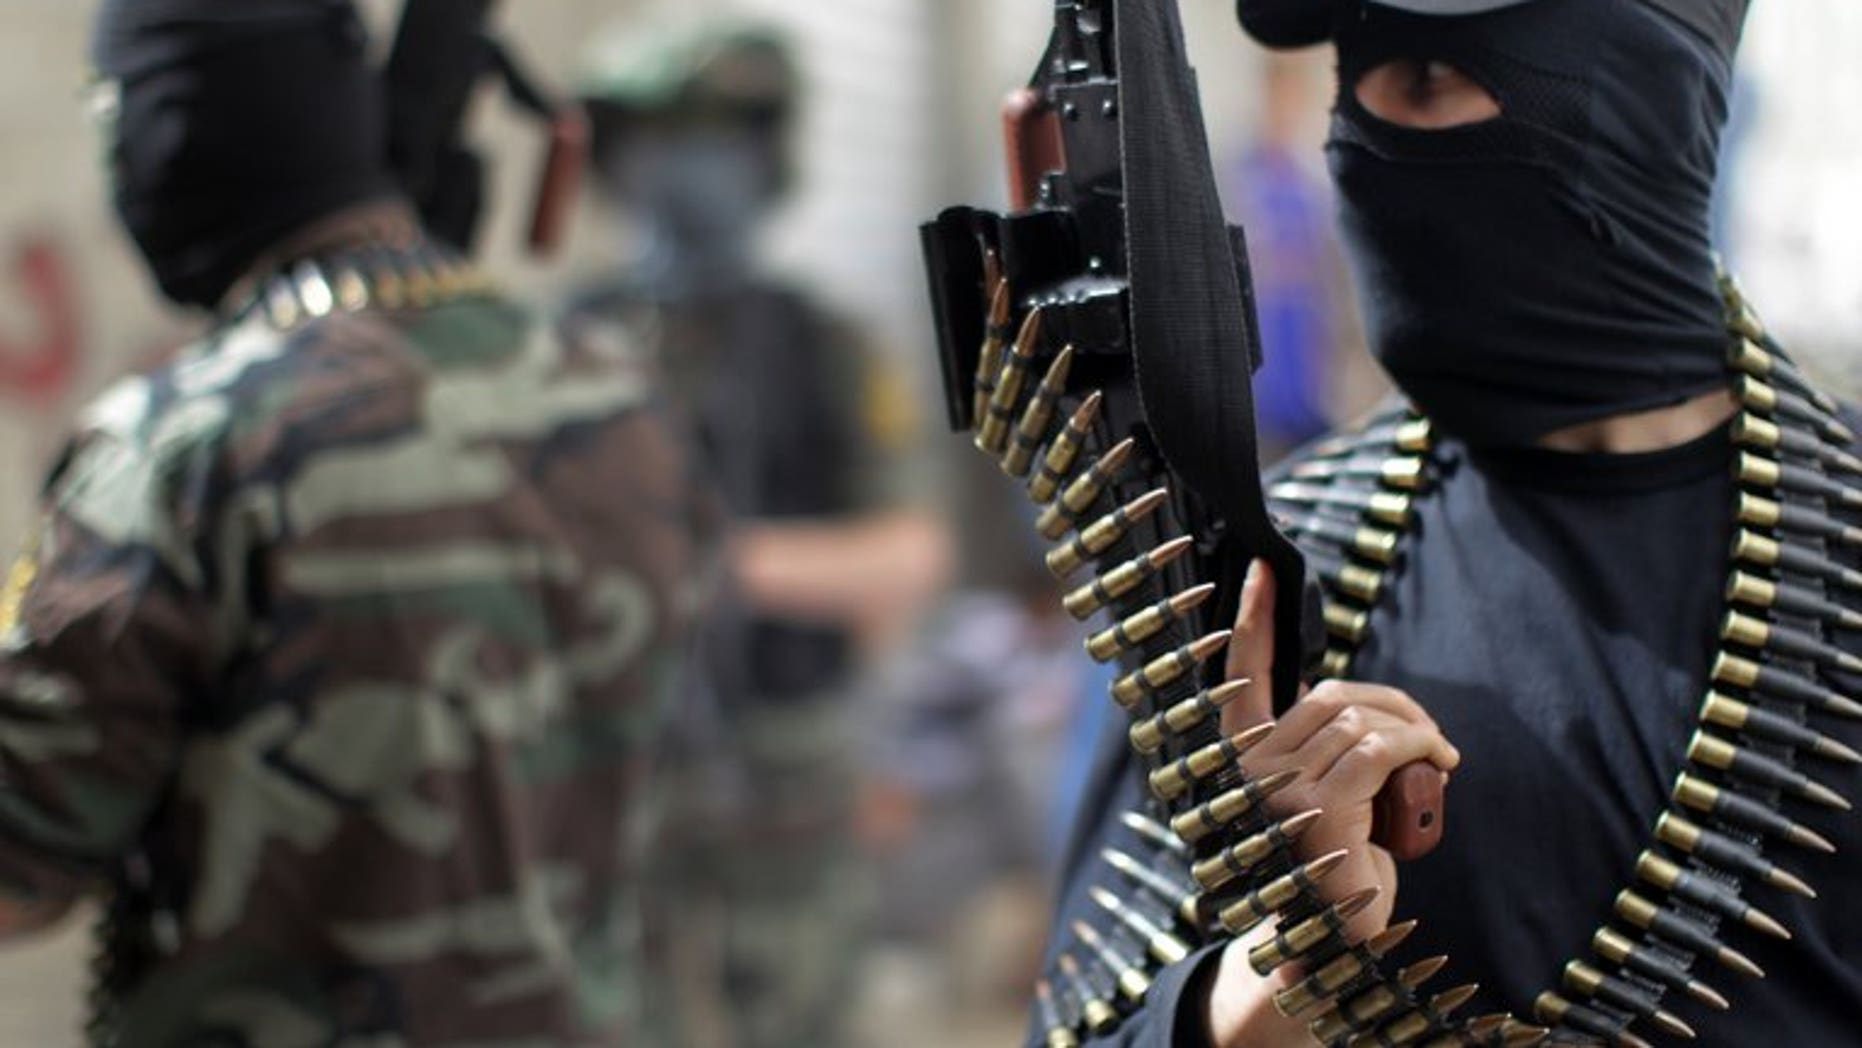 Palestinian militants from the Islamic Jihad group in Jabalia in the northern Gaza Strip on April 8, 2013. Islamic Jihad severed contacts with the Hamas rulers of Gaza Sunday after a commander in its military wing died of wounds sustained in a police shooting, a leader of the radical group told AFP.